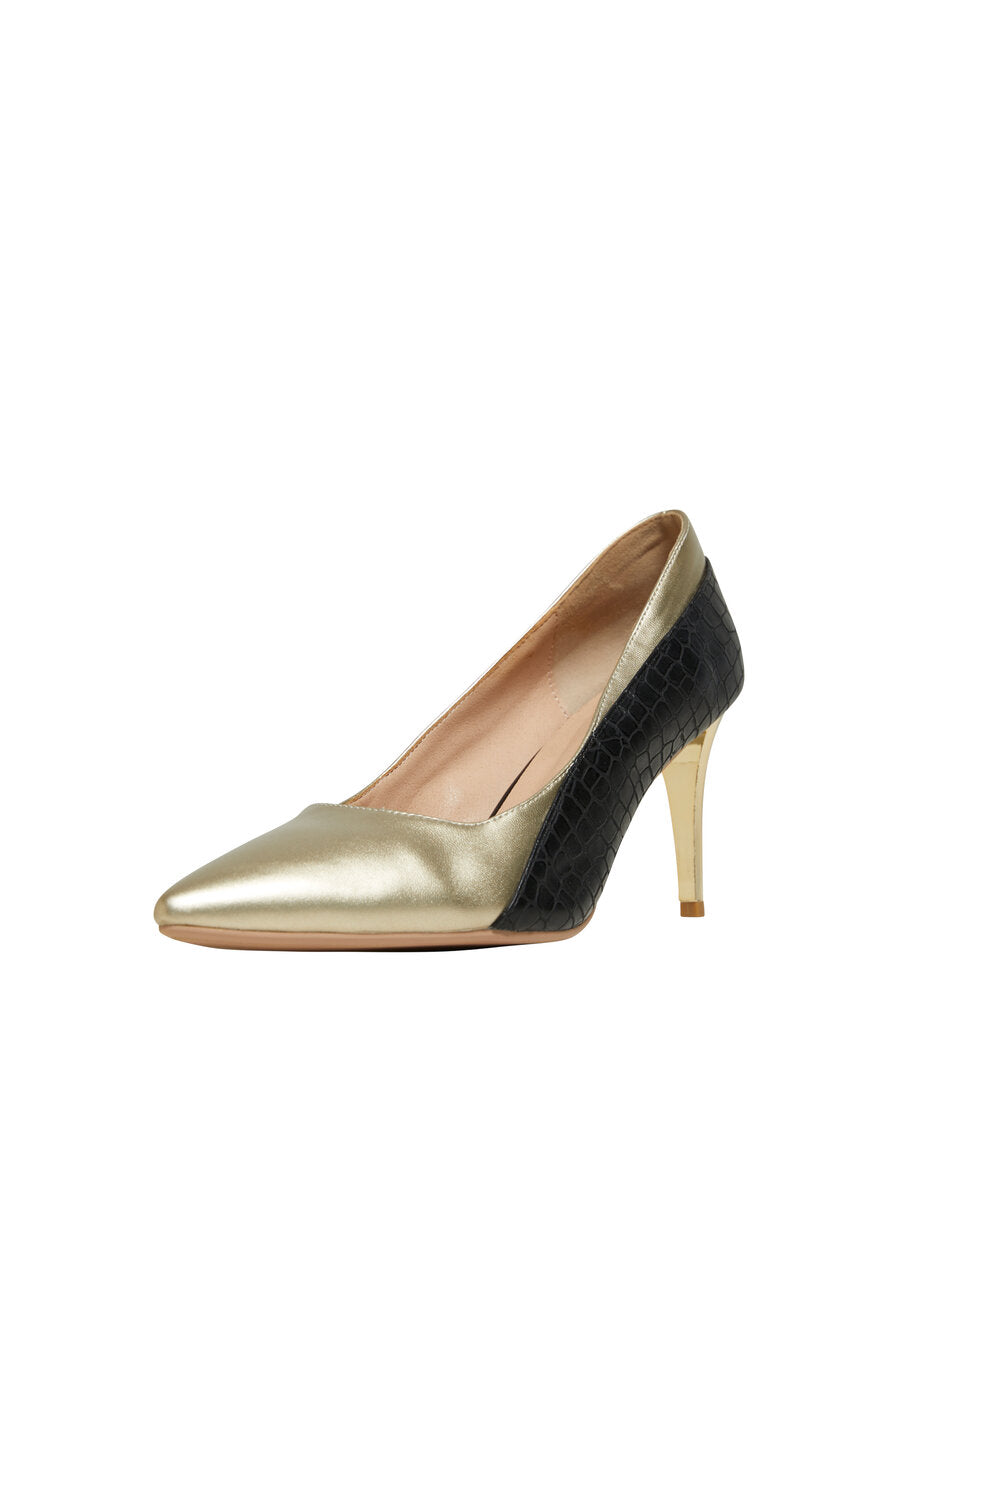 Bardot - Black and Gold Pump